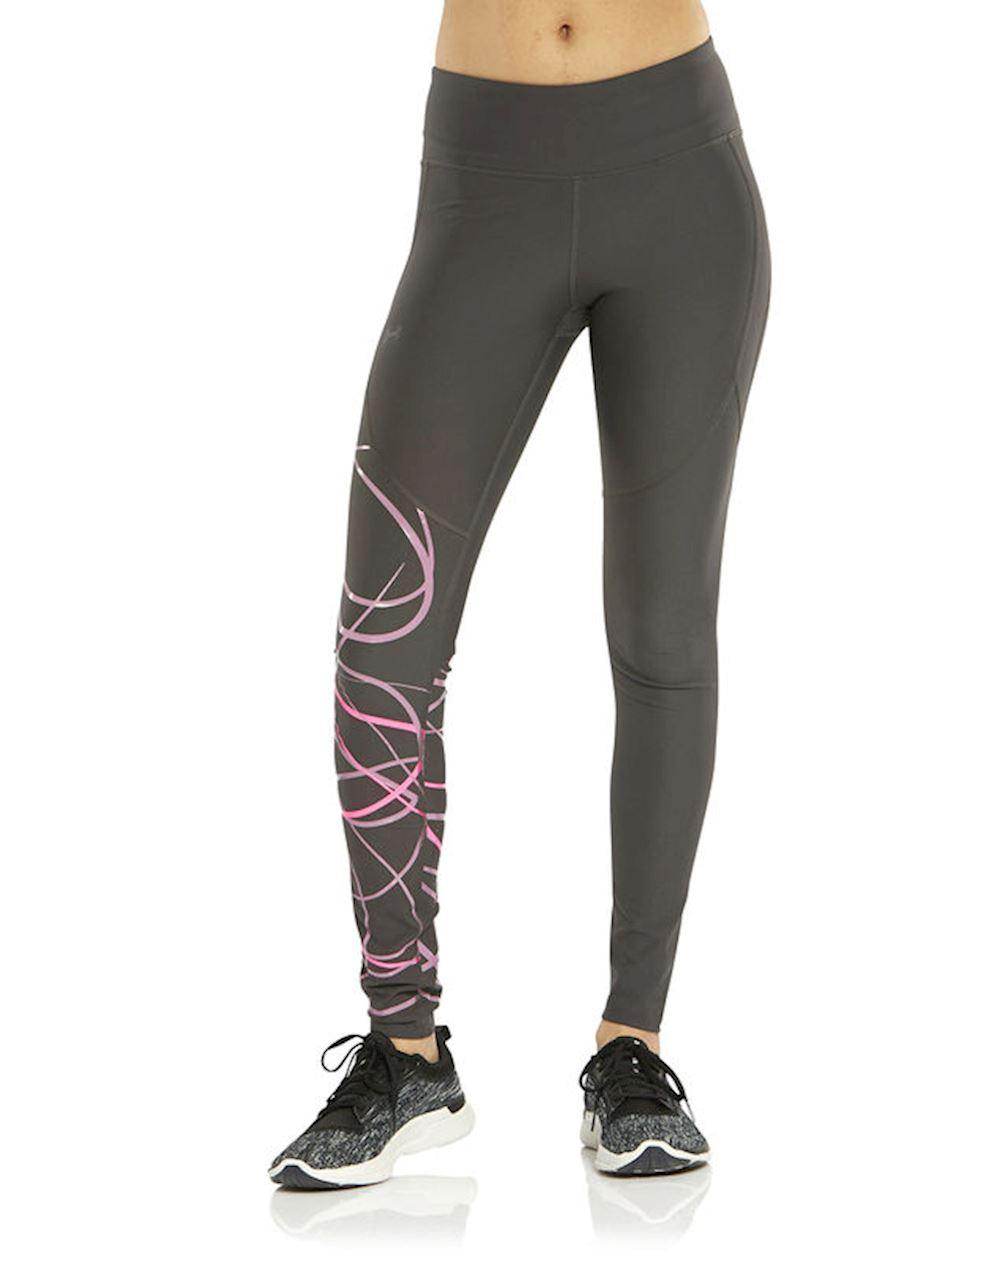 UNDER ARMOUR Malla mujer Vanish Graphic *2335*